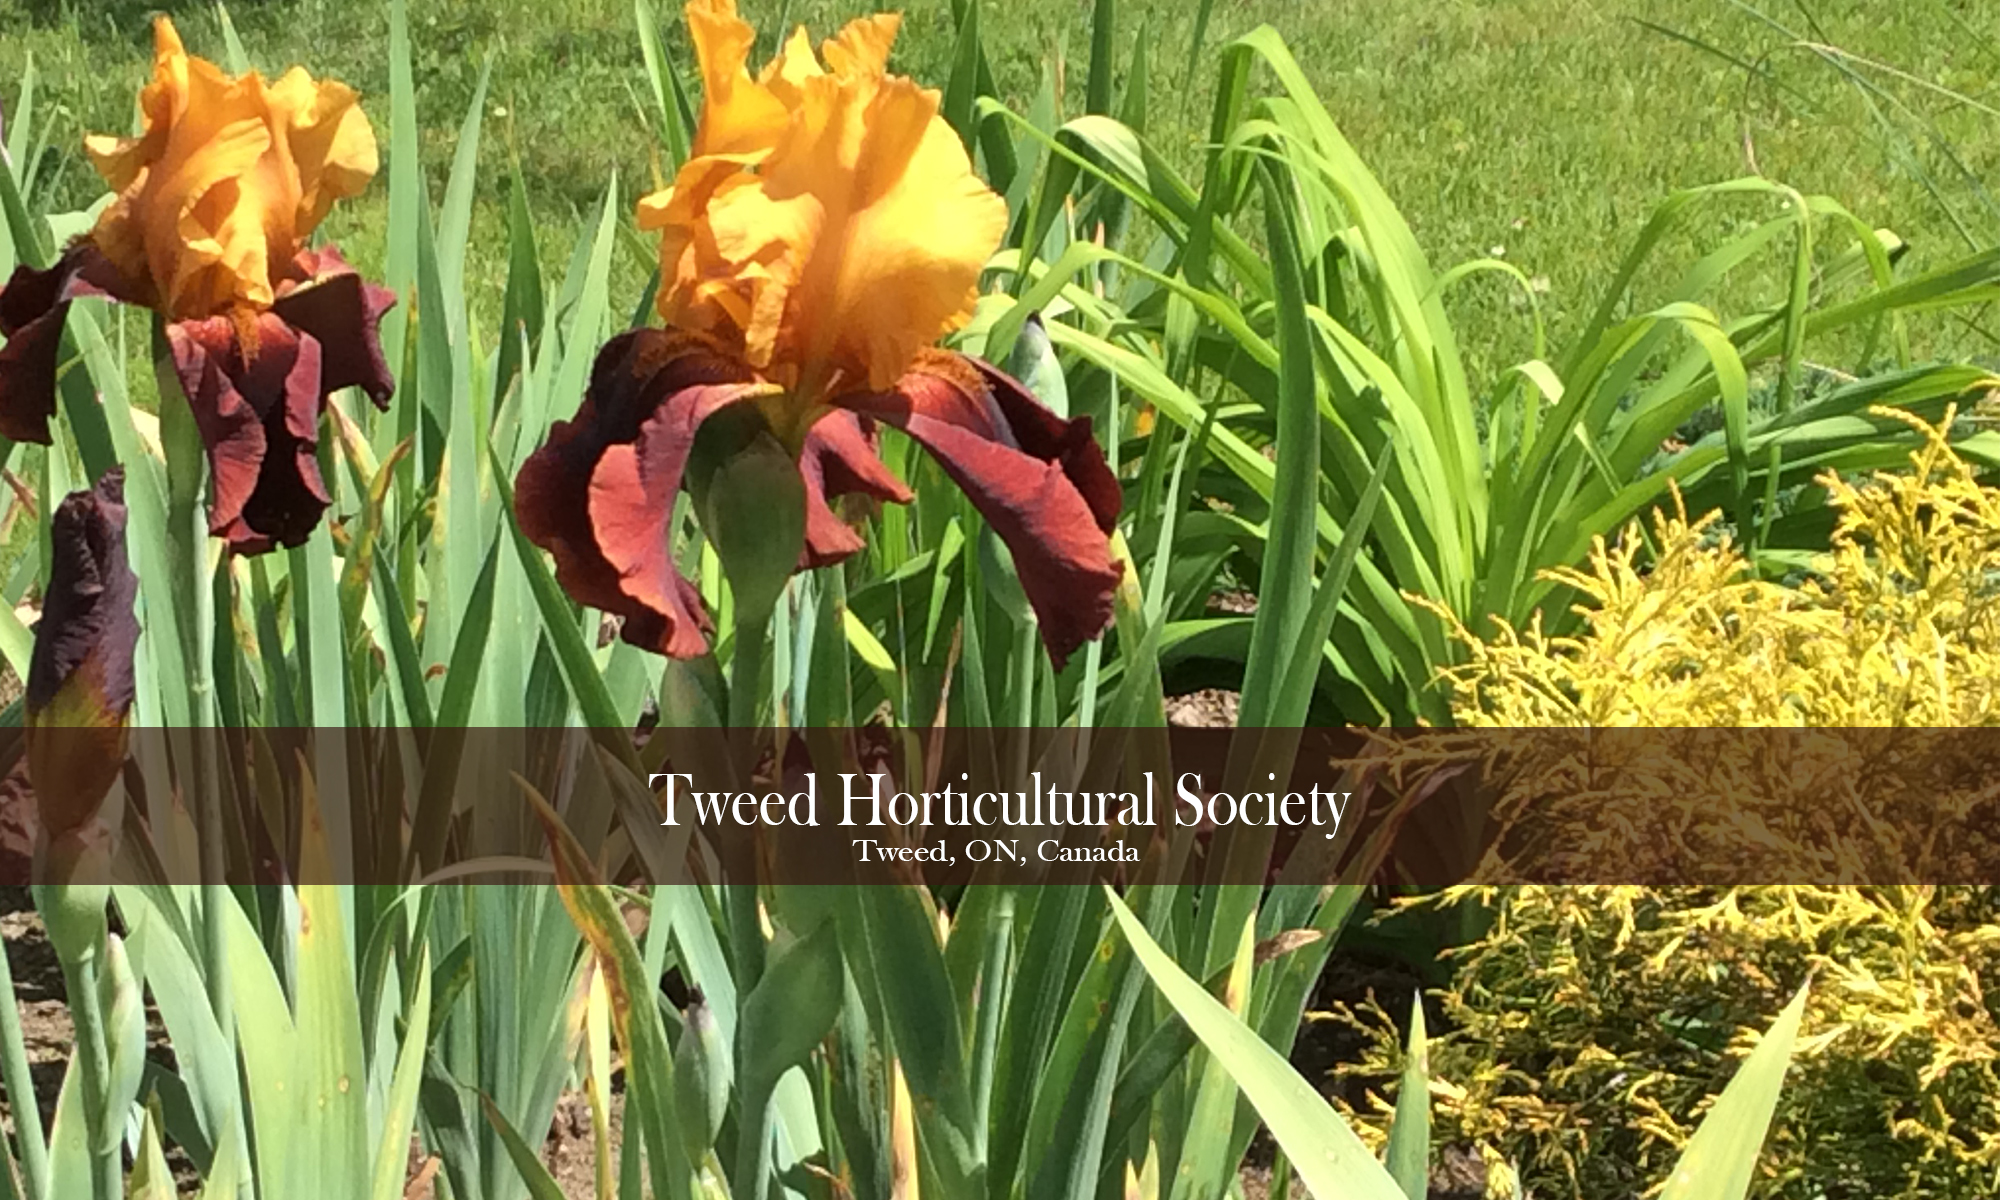 Tweed Horticultural Society